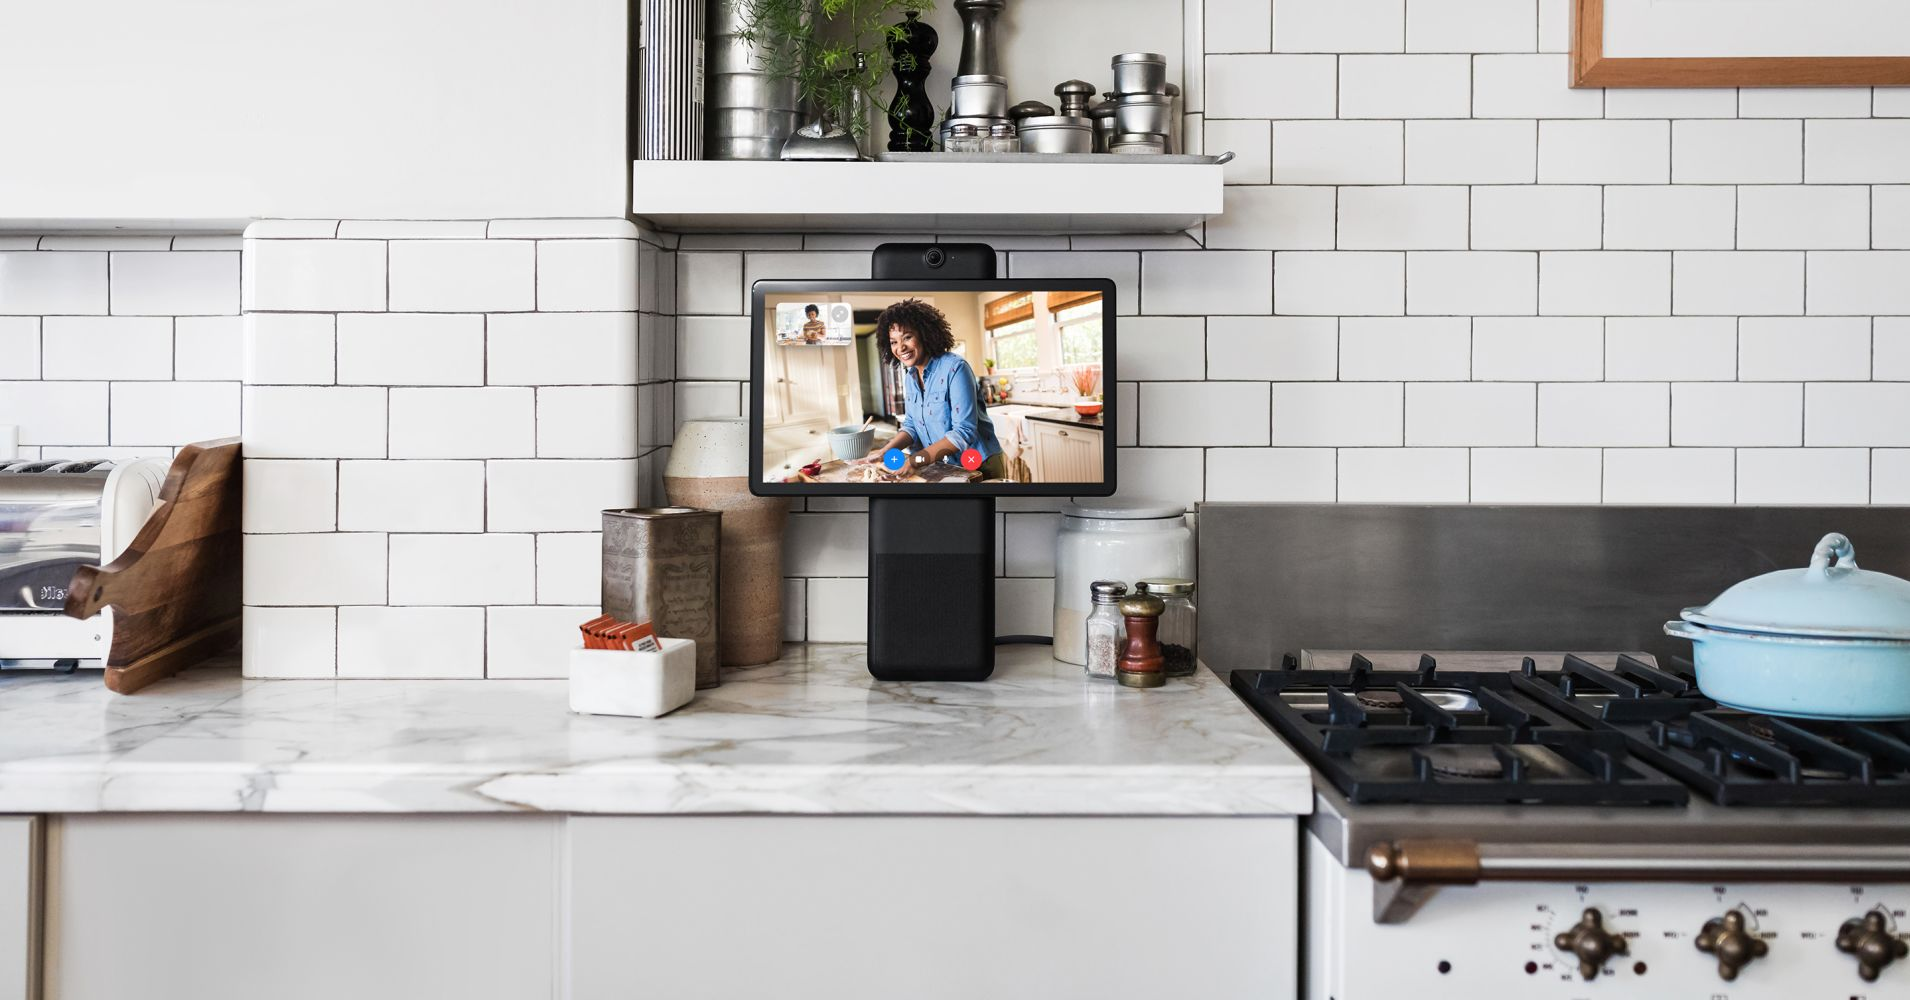 A first look at Facebook's Portal smart speakers: Entertaining video calling, weak streaming content